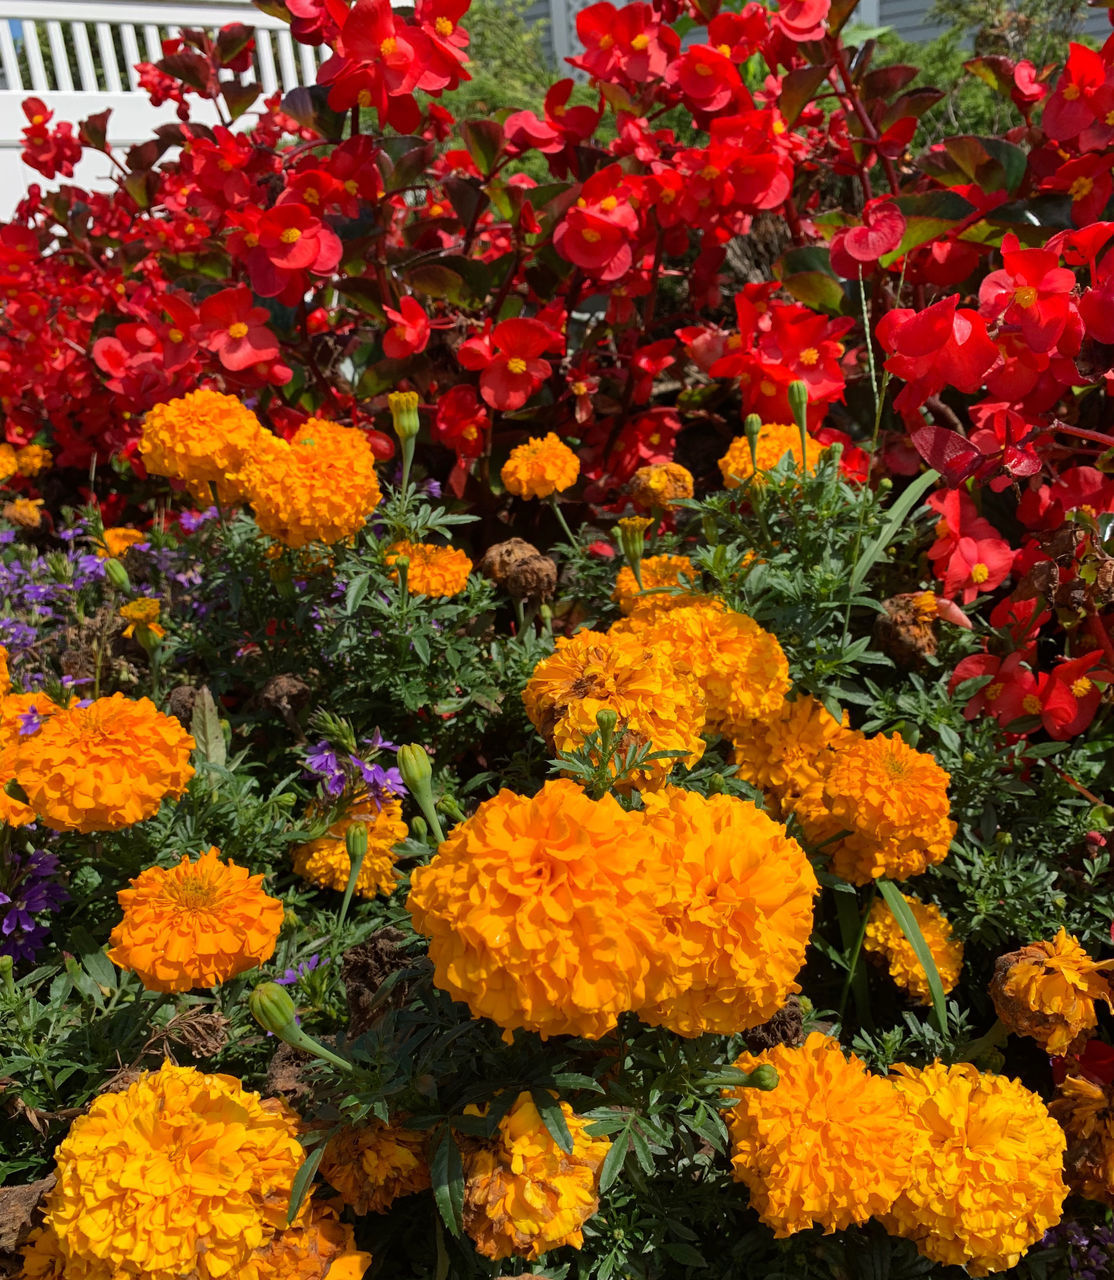 CLOSE-UP OF MARIGOLD FLOWERS